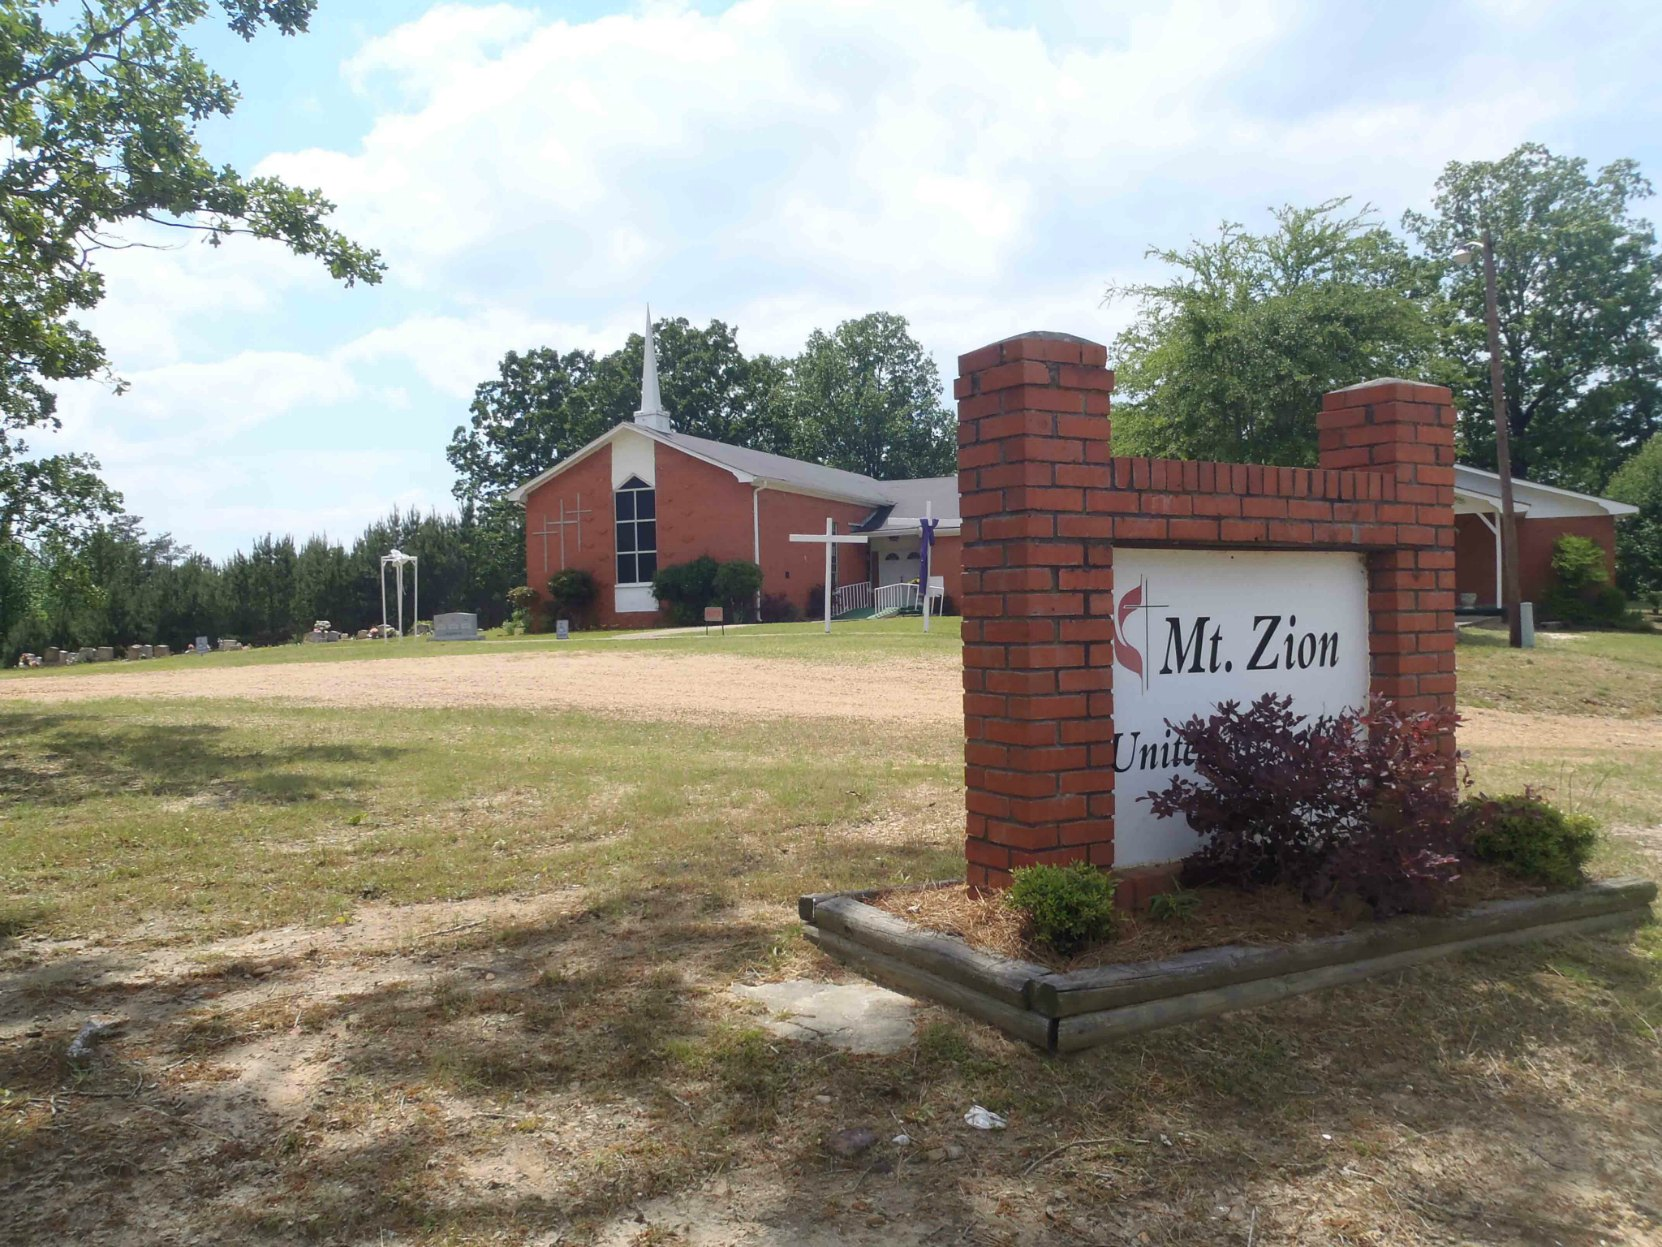 Mt. Zion United Methodist Church, Neshoba County, Mississippi